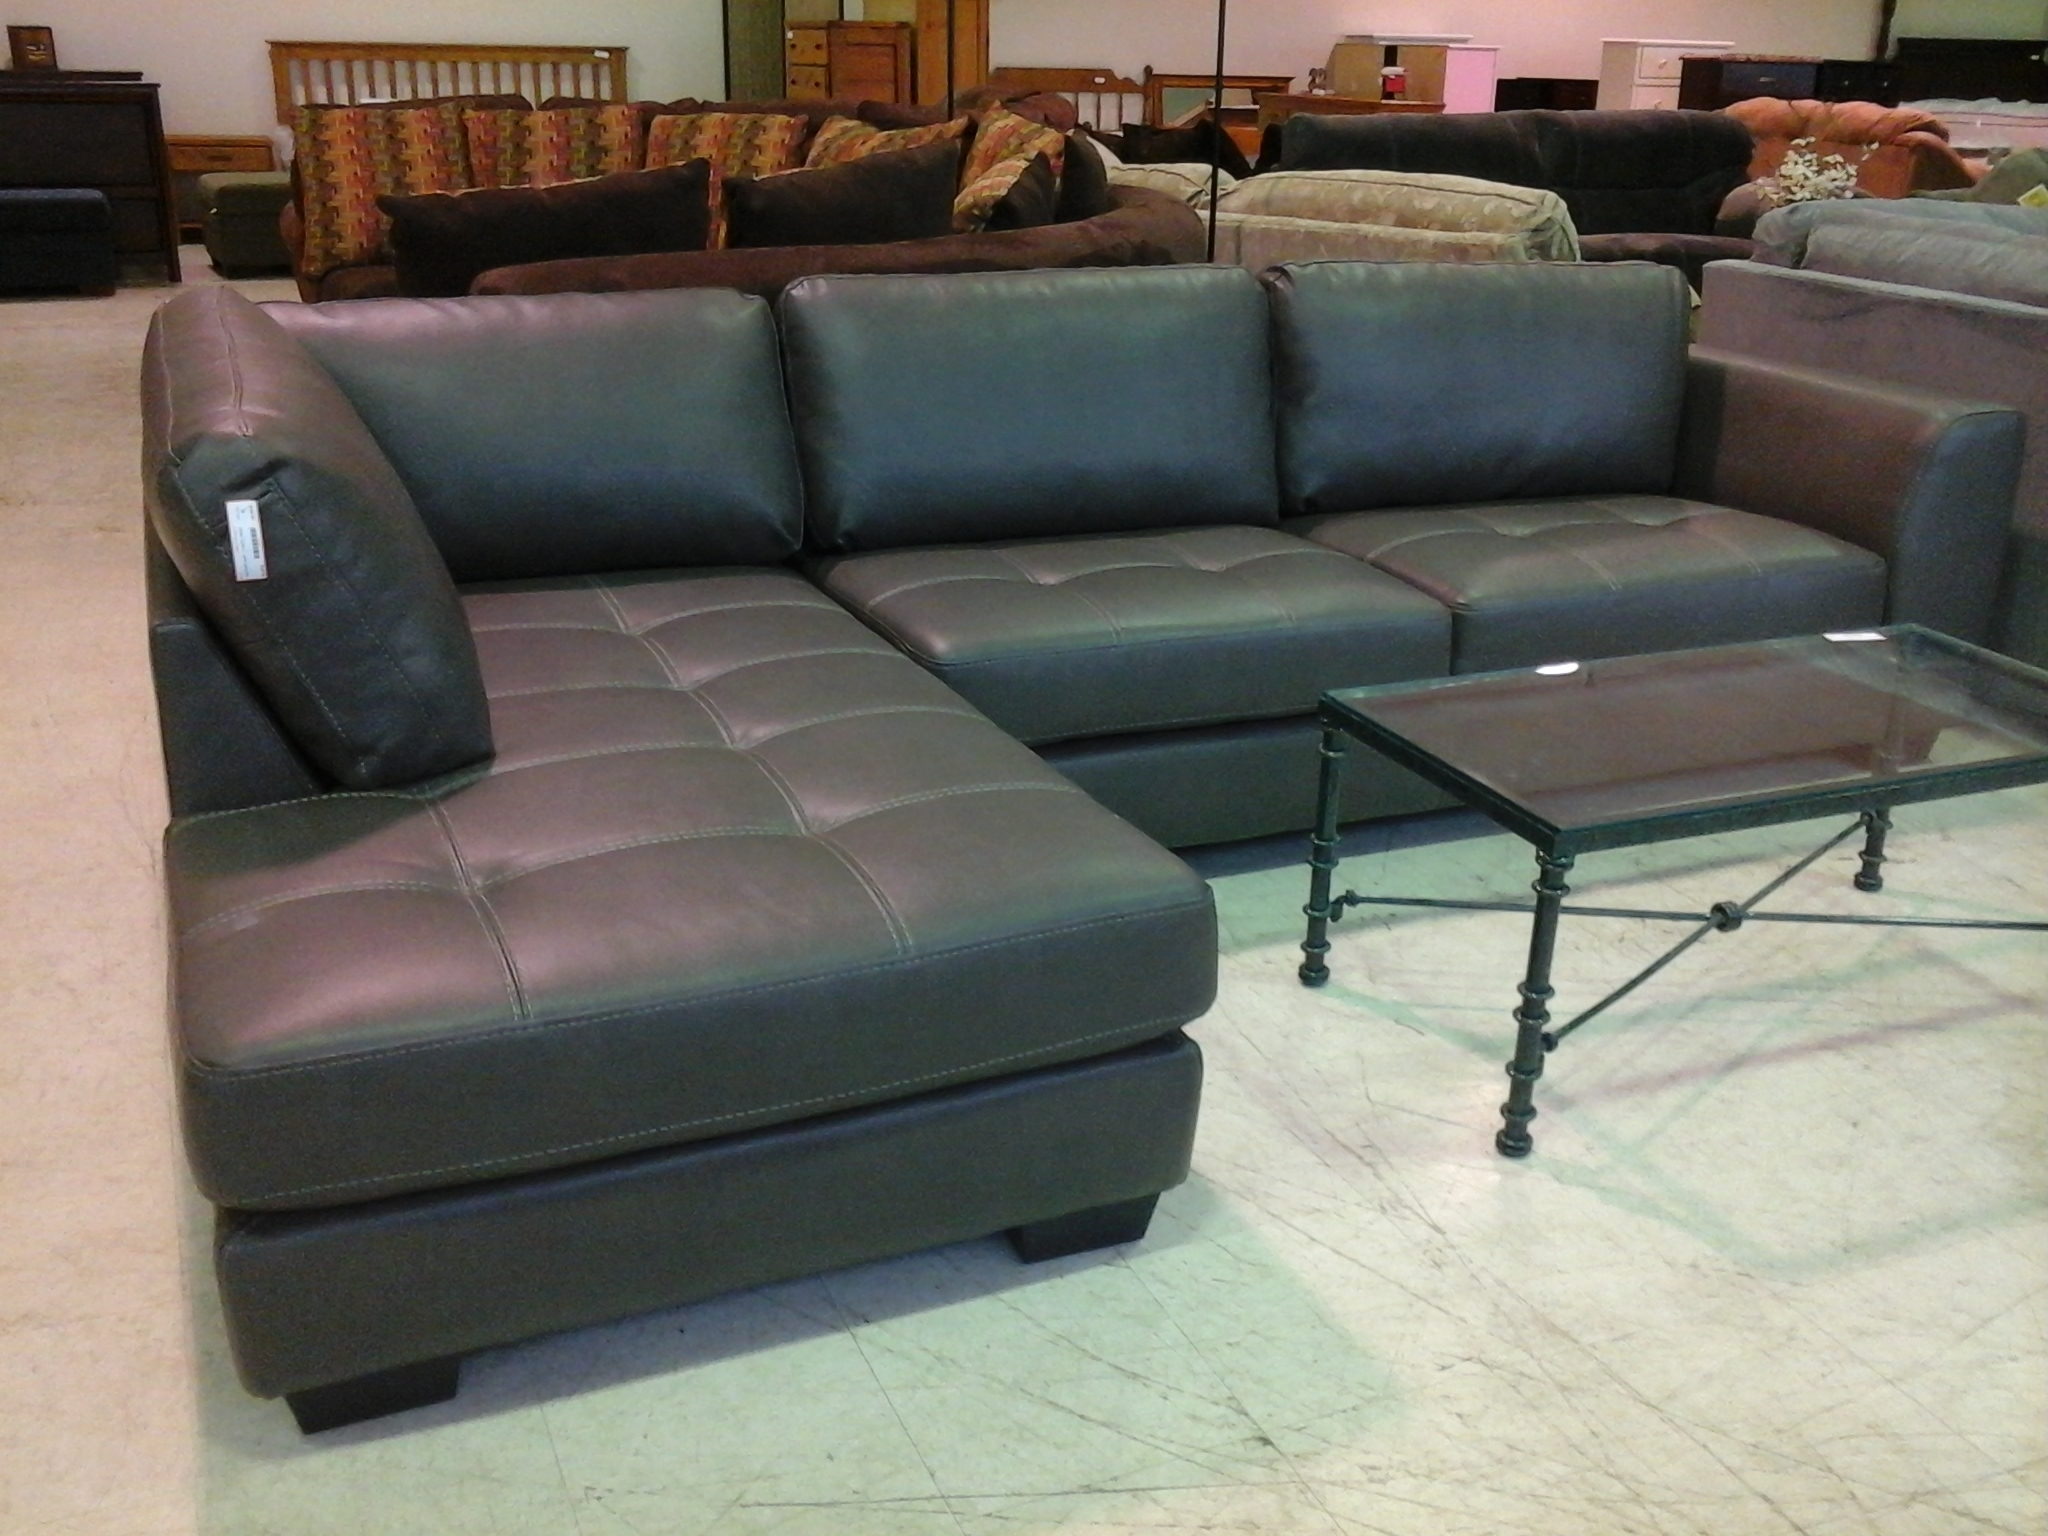 Living Room Design: Classy Black Leather Sectional For Elegant Intended For Trendy Leather Sectional Sofas With Chaise (View 13 of 15)